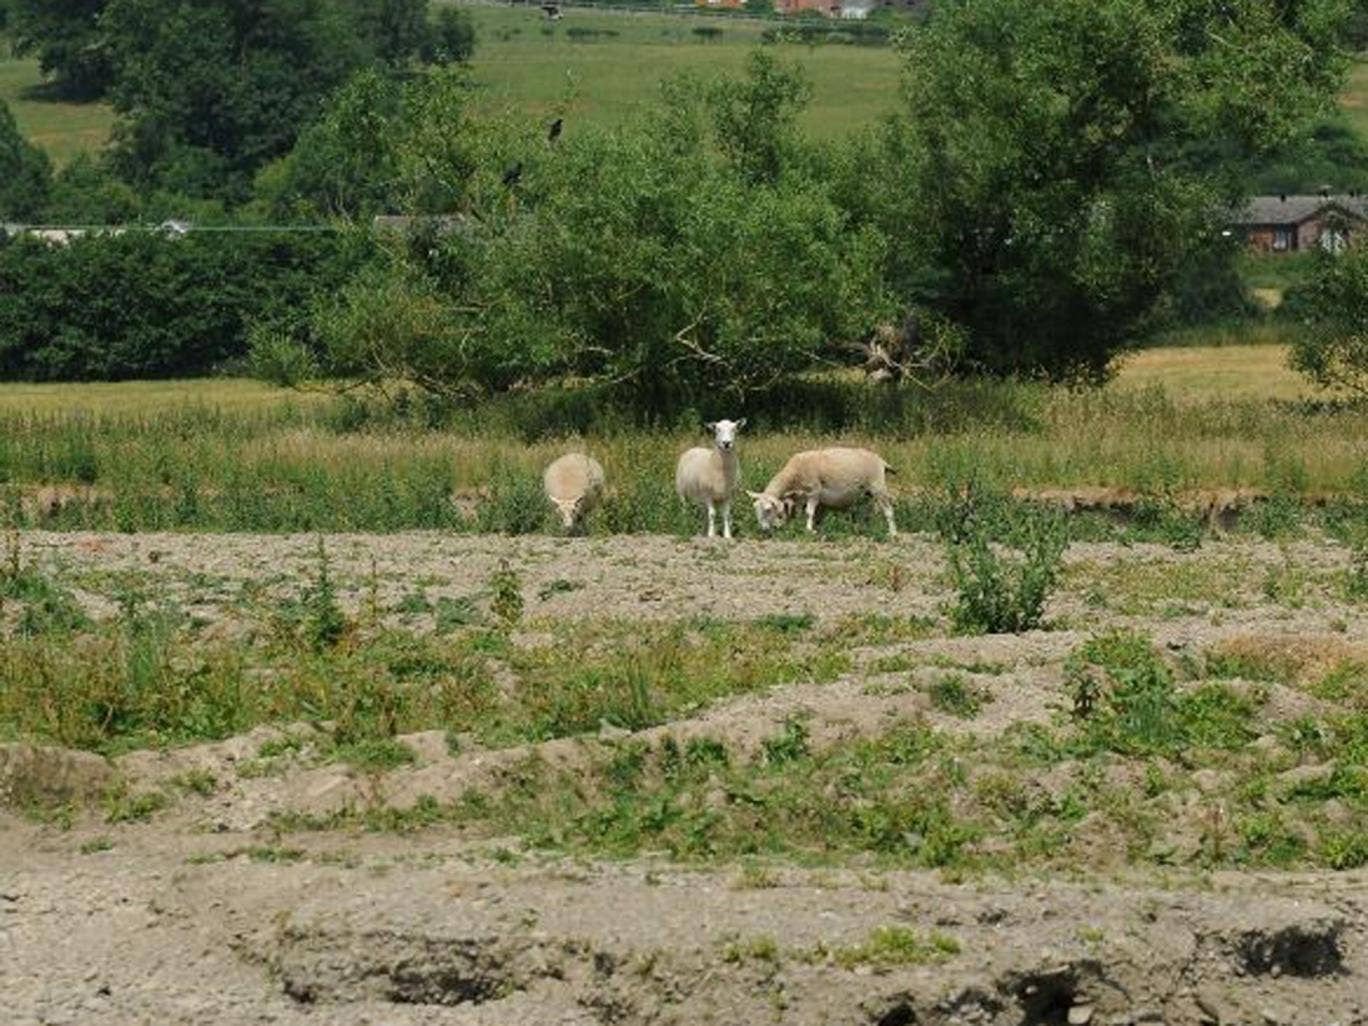 Sheep graze on a dried river bed in Hertfordshire.  Heat-baked ground could lead to localised flooding in the wake of the heatwave